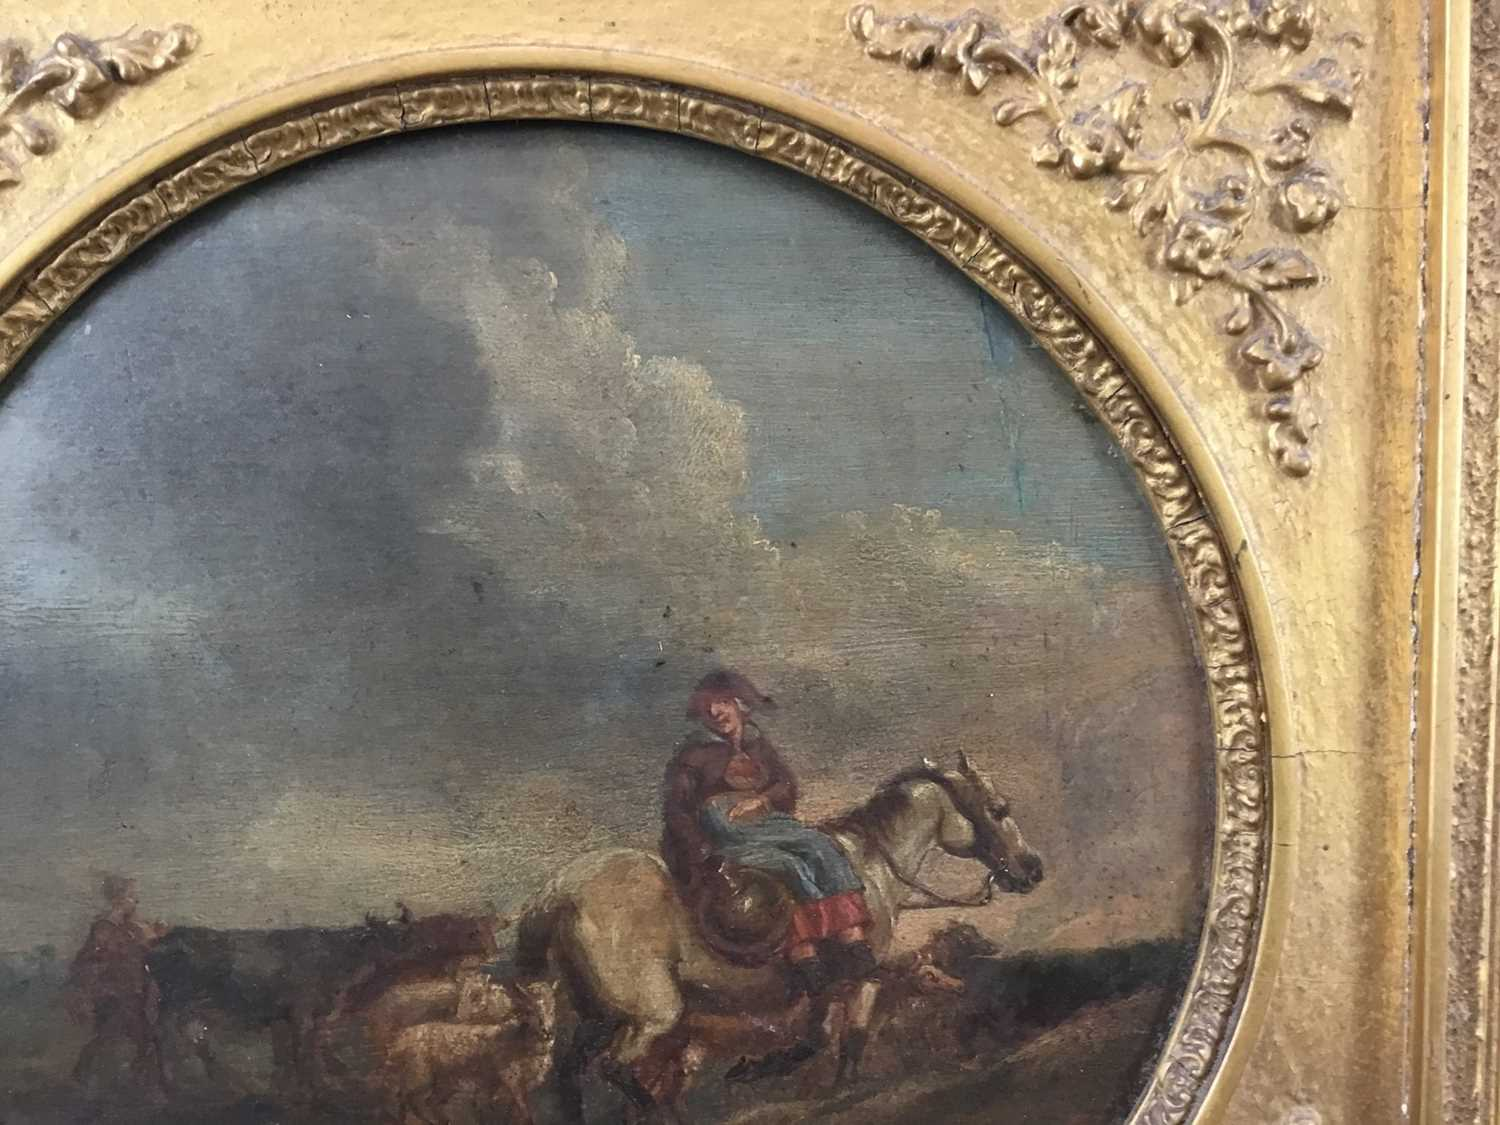 17th/18th century Dutch School oil on panel, tondo - Going to Market, inscribed verso Camphuysen, in - Image 5 of 11